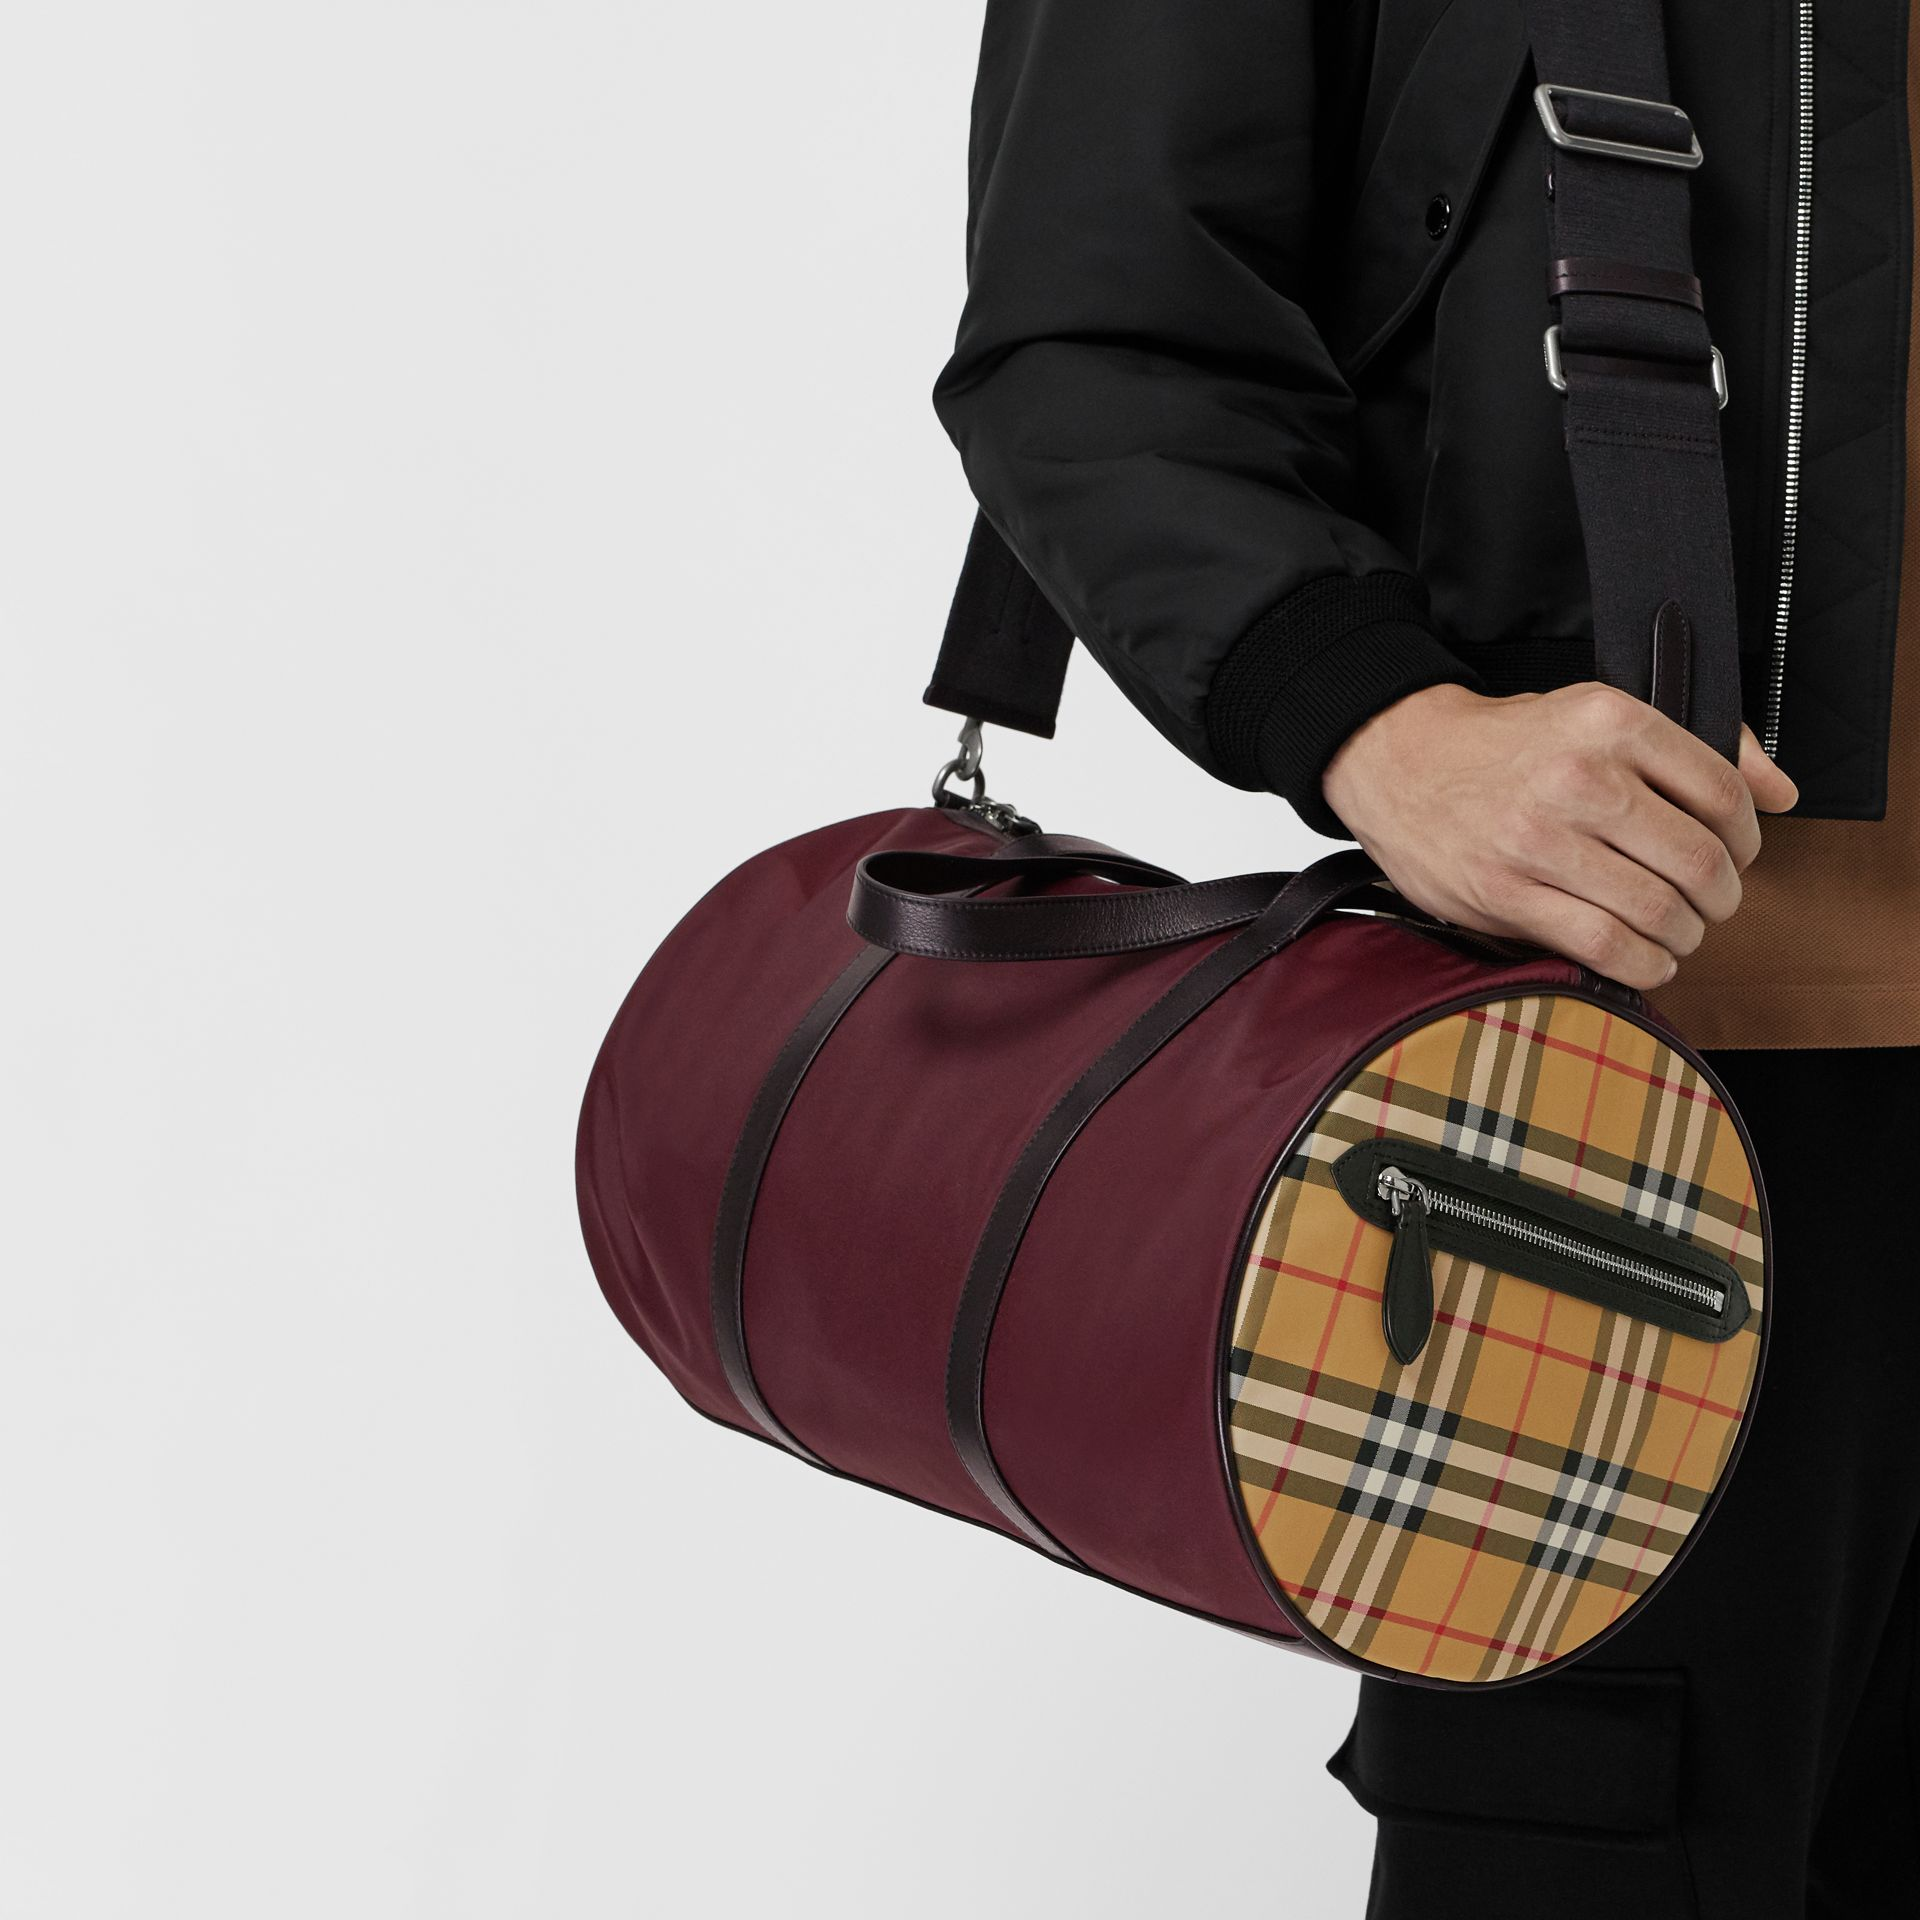 Sac The Barrel moyen en nylon et à motif Vintage check (Oxblood) - Homme | Burberry - photo de la galerie 5